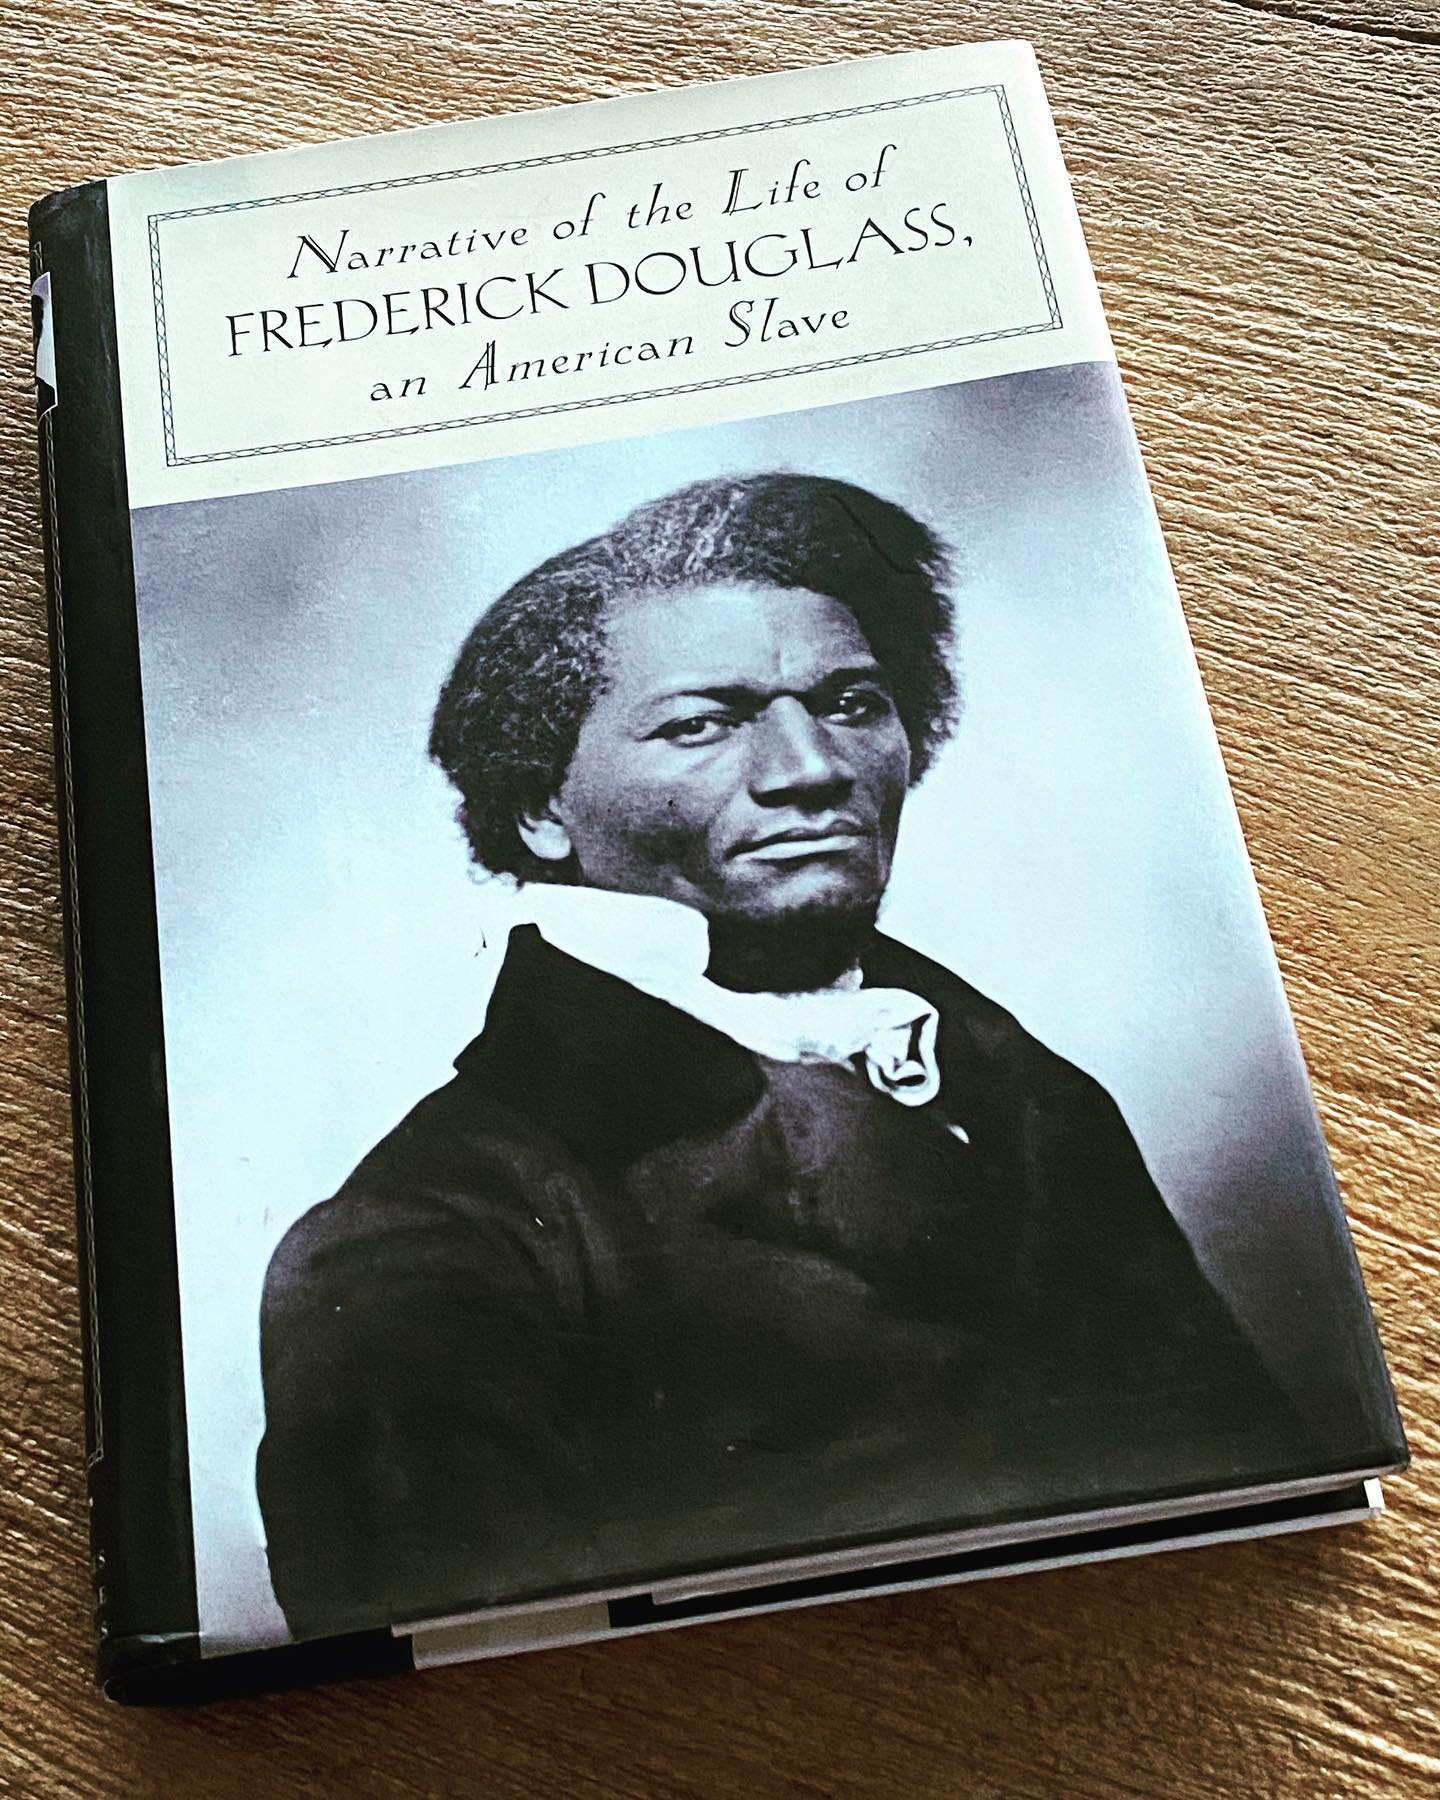 """The following quotes were written by the great Frederick Douglass and published in 1845 - 175 years ago... . . """"The life of a nation is secure only while the nation is honest, truthful, and virtuous."""" . . """"The thing worse than rebellion is the thing that causes rebellion."""" . . """"The American people have this to learn: that where justice is denied, where poverty is enforced, where ignorance prevails, and where any one class is made to feel that society is an organized conspiracy to oppress, rob, and degrade them, neither person nor property is safe."""" . . """"It is not light that we need, but fire; it is not the gentle shower, but thunder. We need the storm, the whirlwind, and the earthquake."""" . . """"No man can put a chain about the ankle of his fellow man without at last finding the other end fastened about his own neck."""" . . """"Find out just what any people will quietly submit to and you have the exact measure of the injustice and wrong which will be imposed on them."""" . """"I would unite with anybody to do right and with nobody to do wrong."""" . . - Frederick Douglass"""